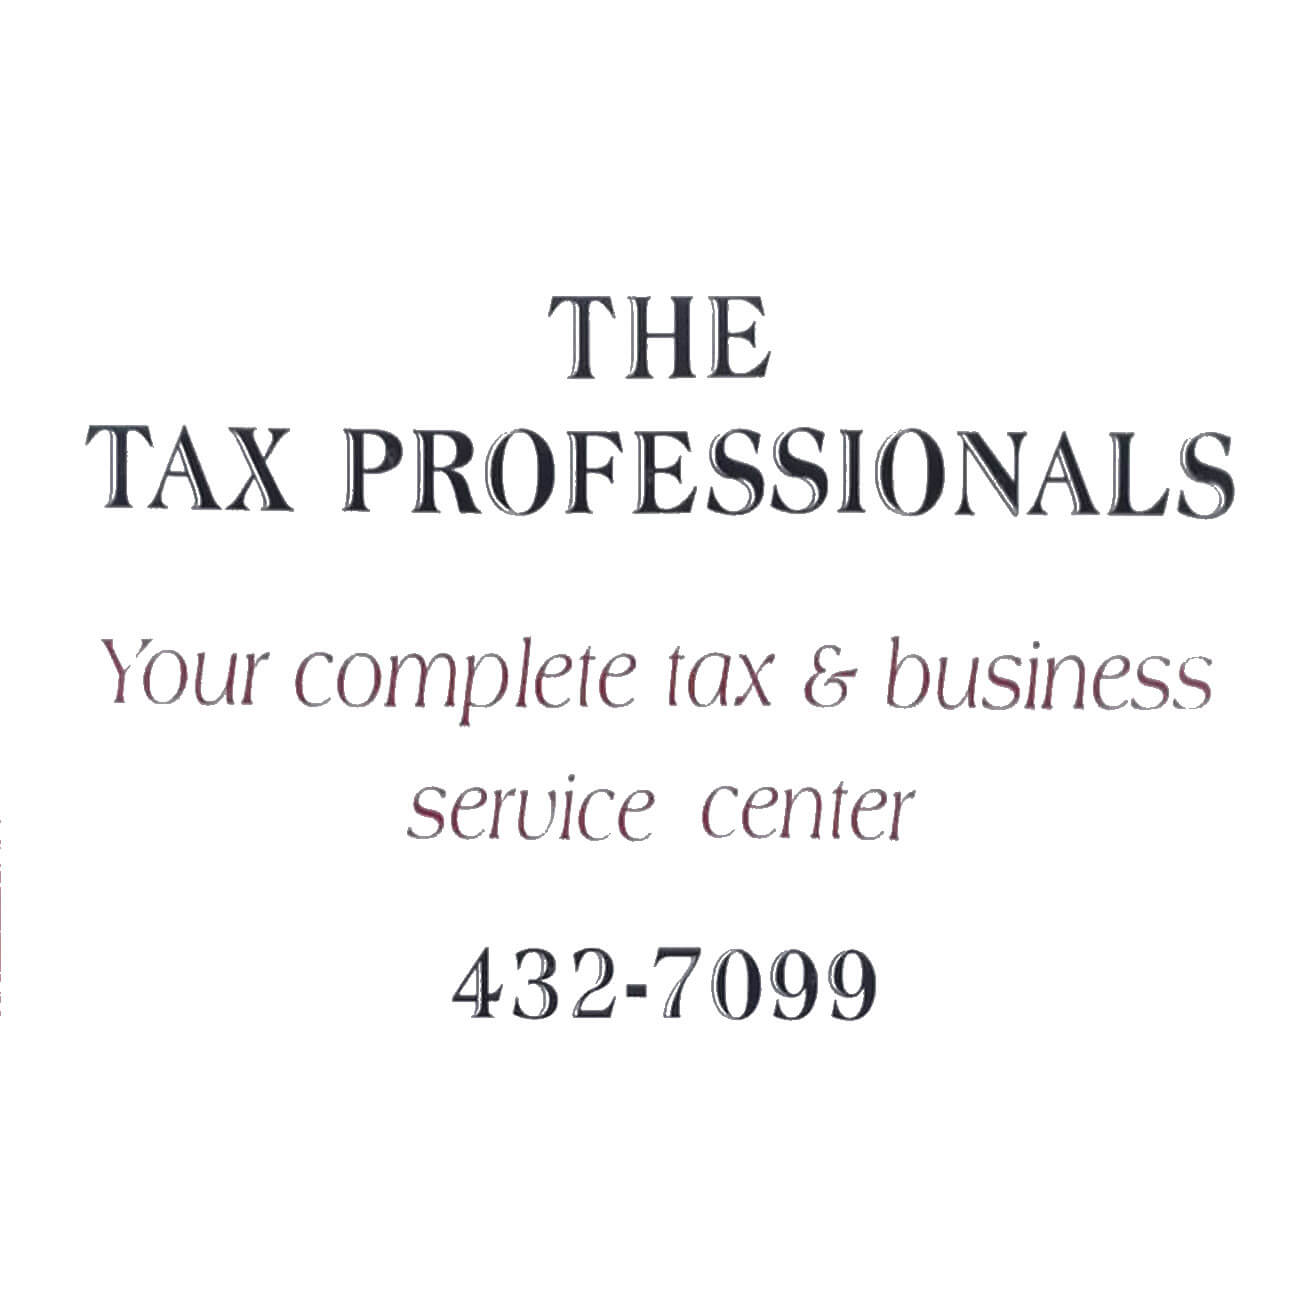 The Tax Professionals